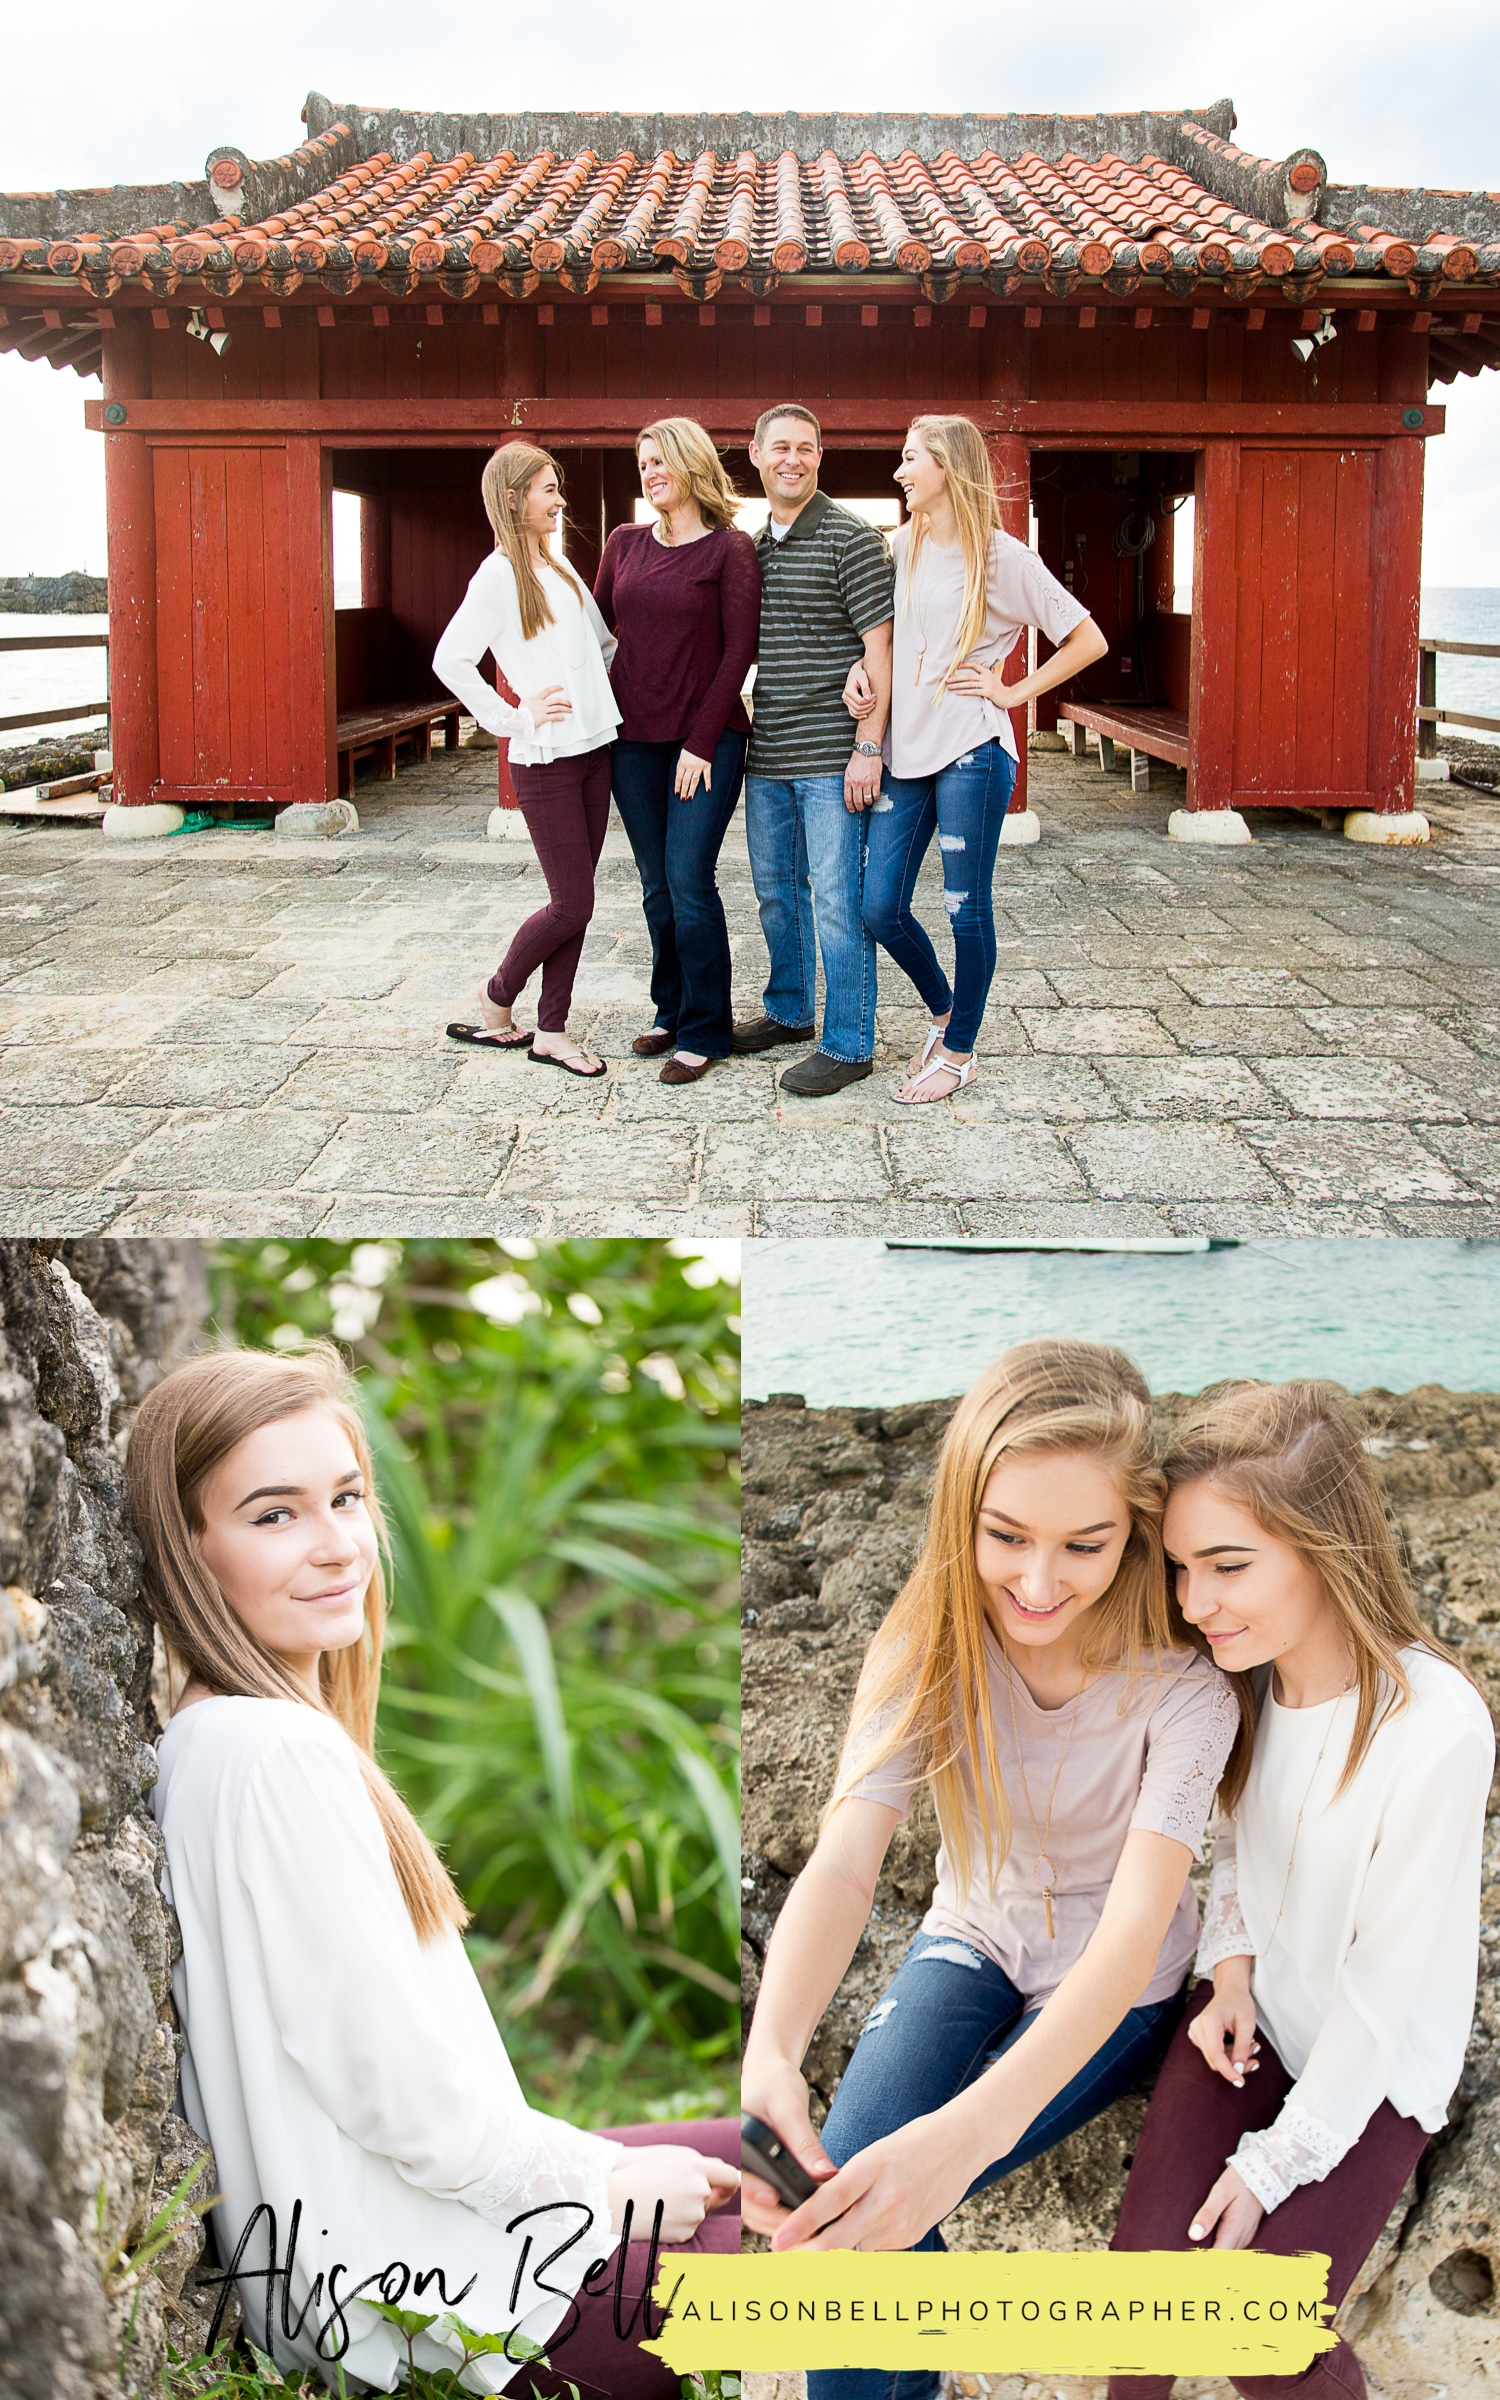 Senior portraits and family session in one. #simplesenior in Okinawa Japan by Alison Bell, Photographer #alisonbellphotog www.alisonbellphotographer.com